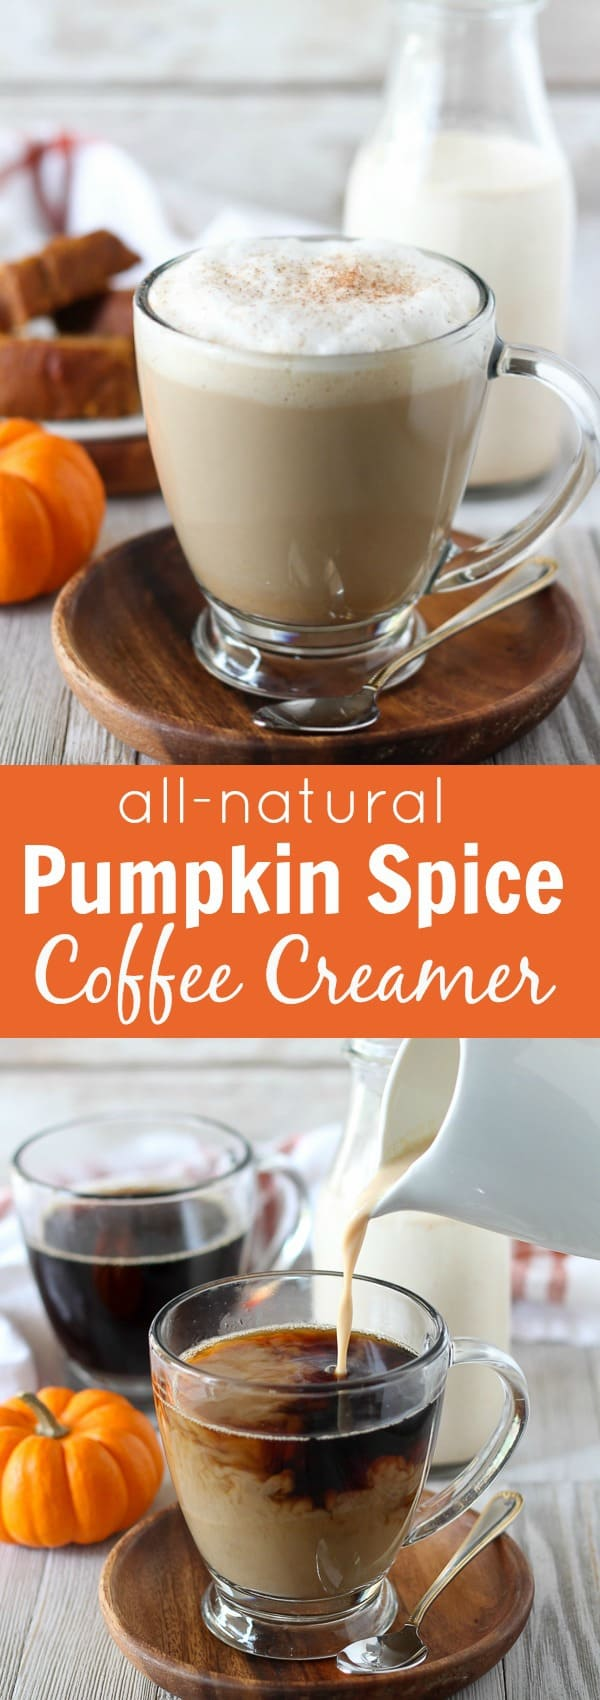 This Homemade Pumpkin Spice Latte Is Healthier, Tastier, And Even Quicker Than Starbucks This Homemade Pumpkin Spice Latte Is Healthier, Tastier, And Even Quicker Than Starbucks new foto